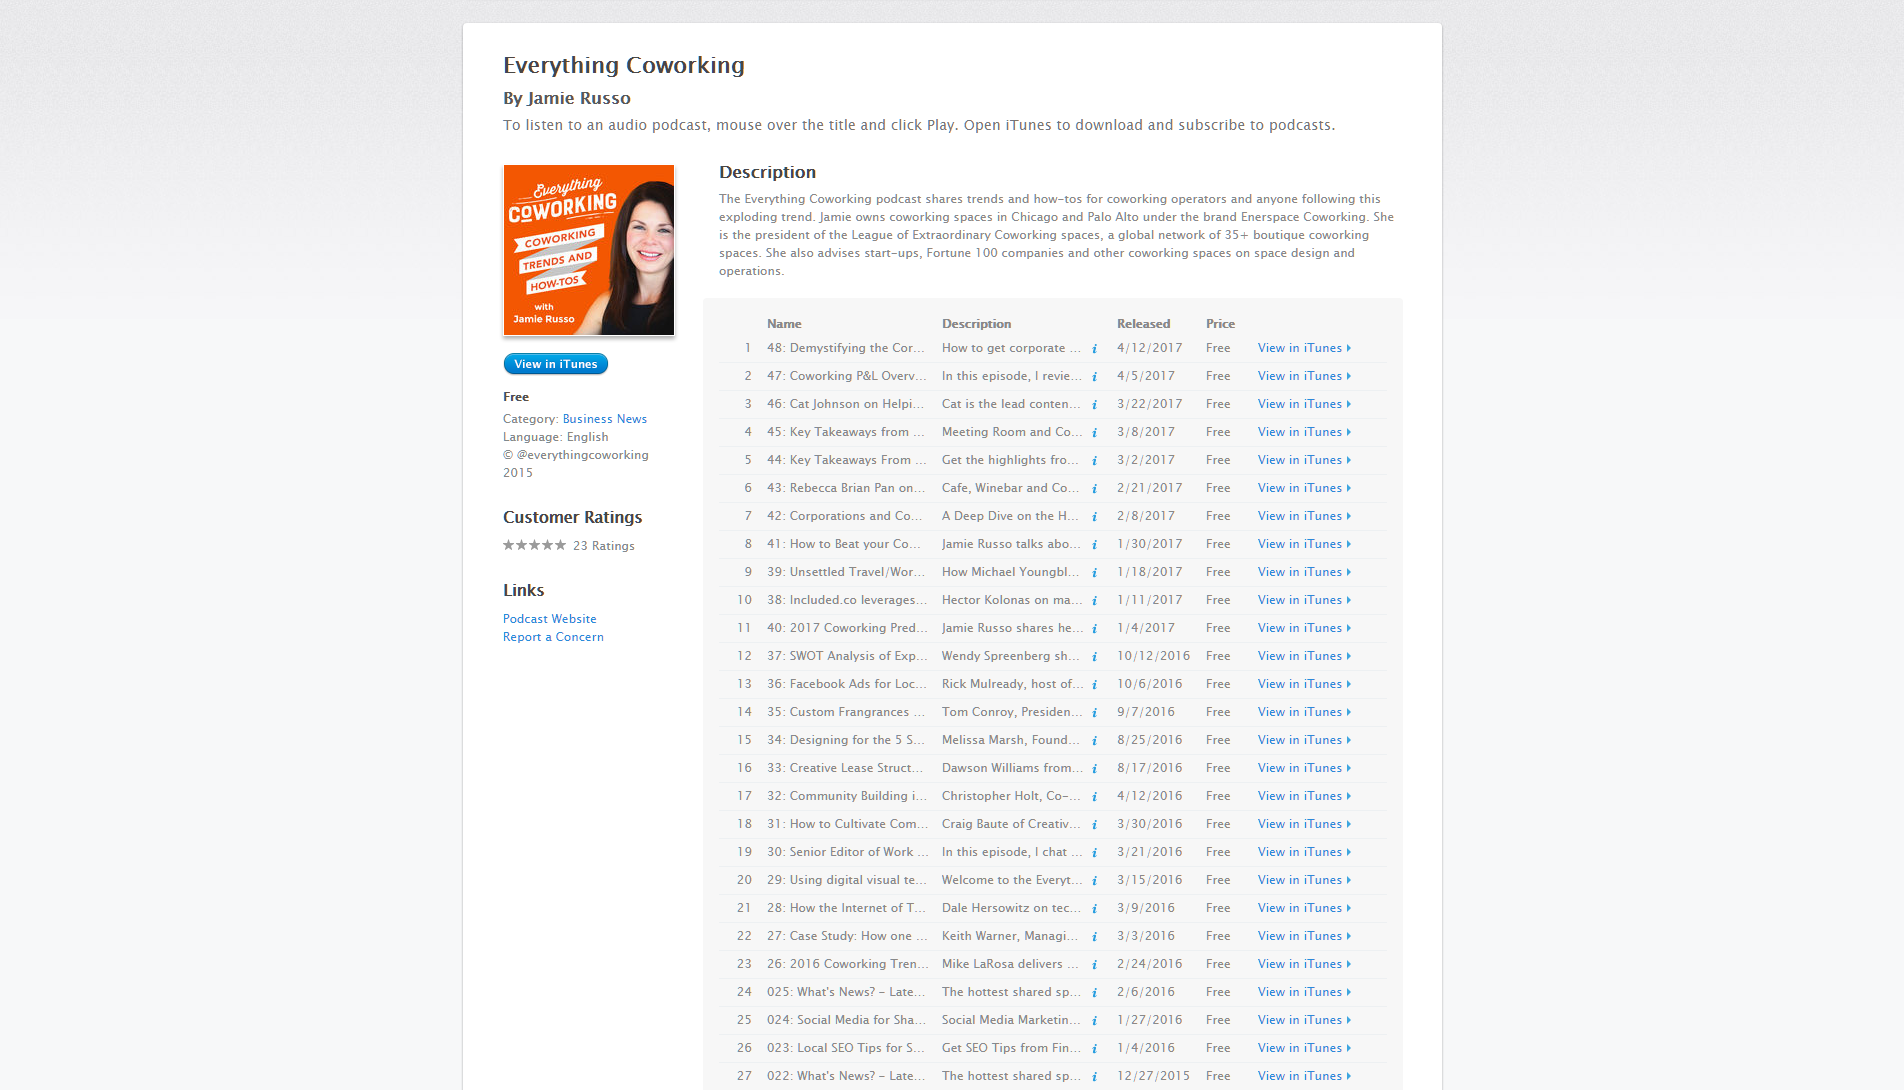 Everything Coworking Podcast